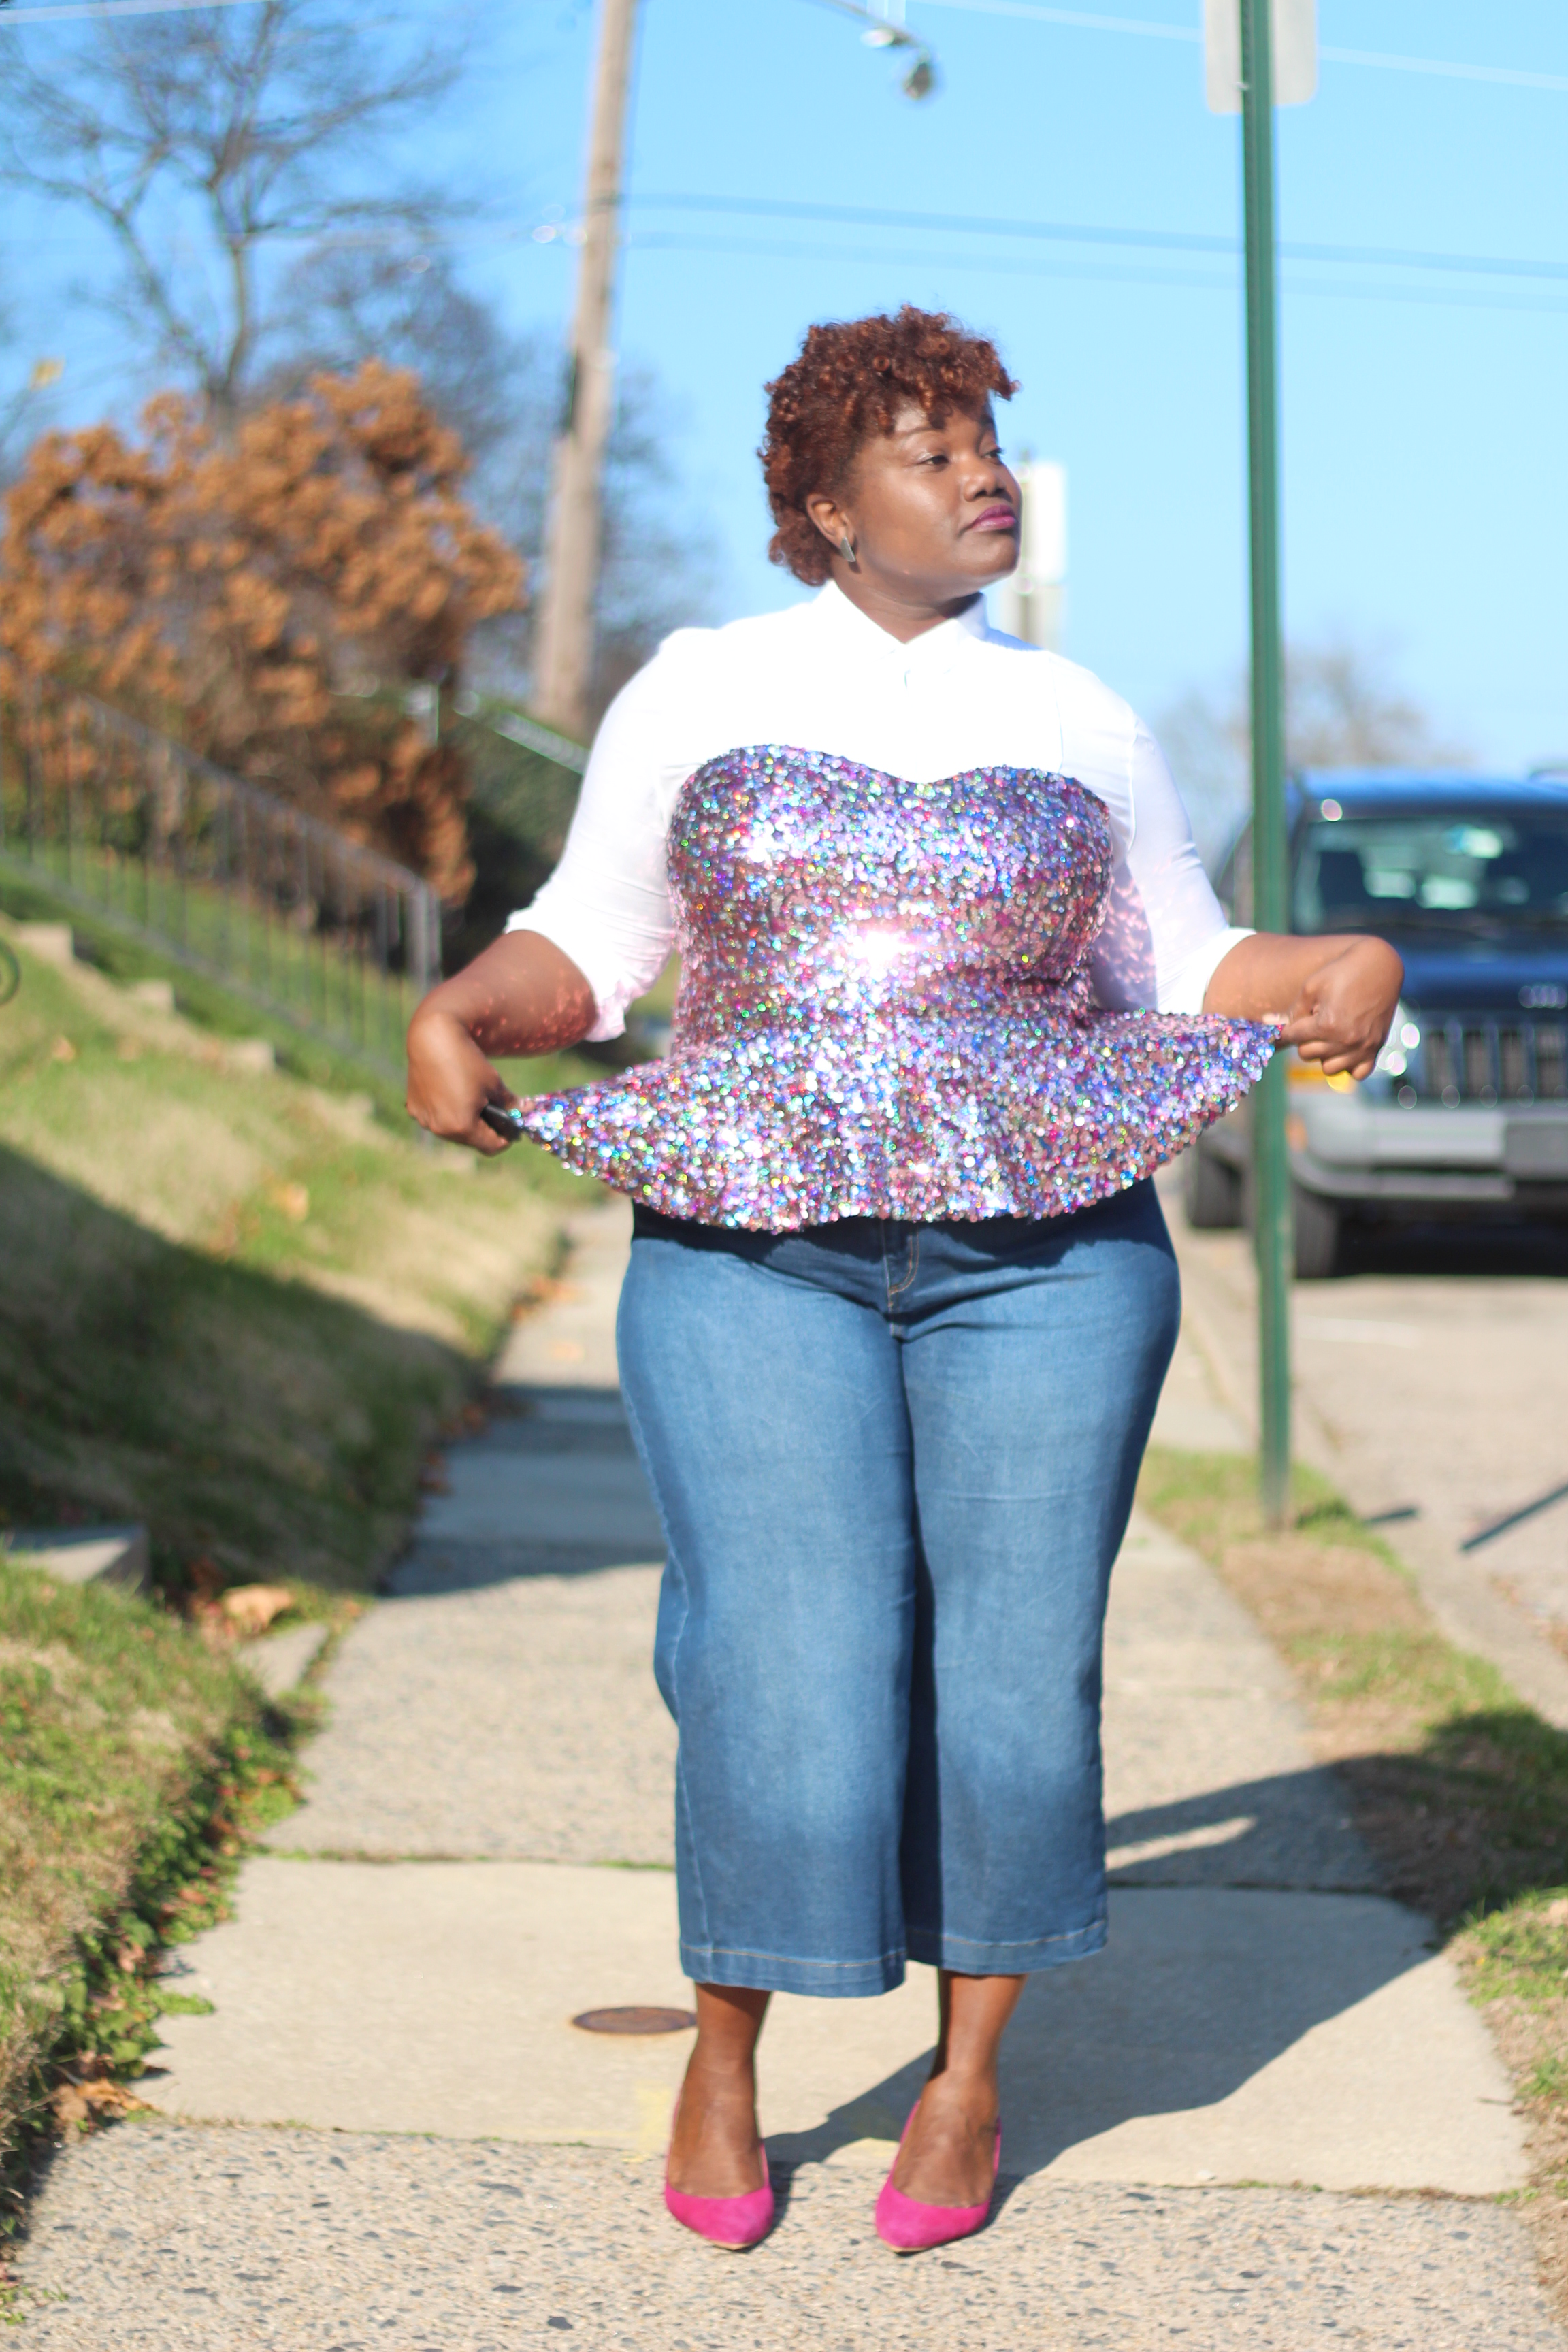 curvy women, curvy girls, holiday style, sequins, sequin bustier, culottes, denim culottes, plus size blogs, plus size bloggers, kitten heels, eloquii, cropped jeans, curvy bloggers, curvy blogs, grown and curvy woman blog,